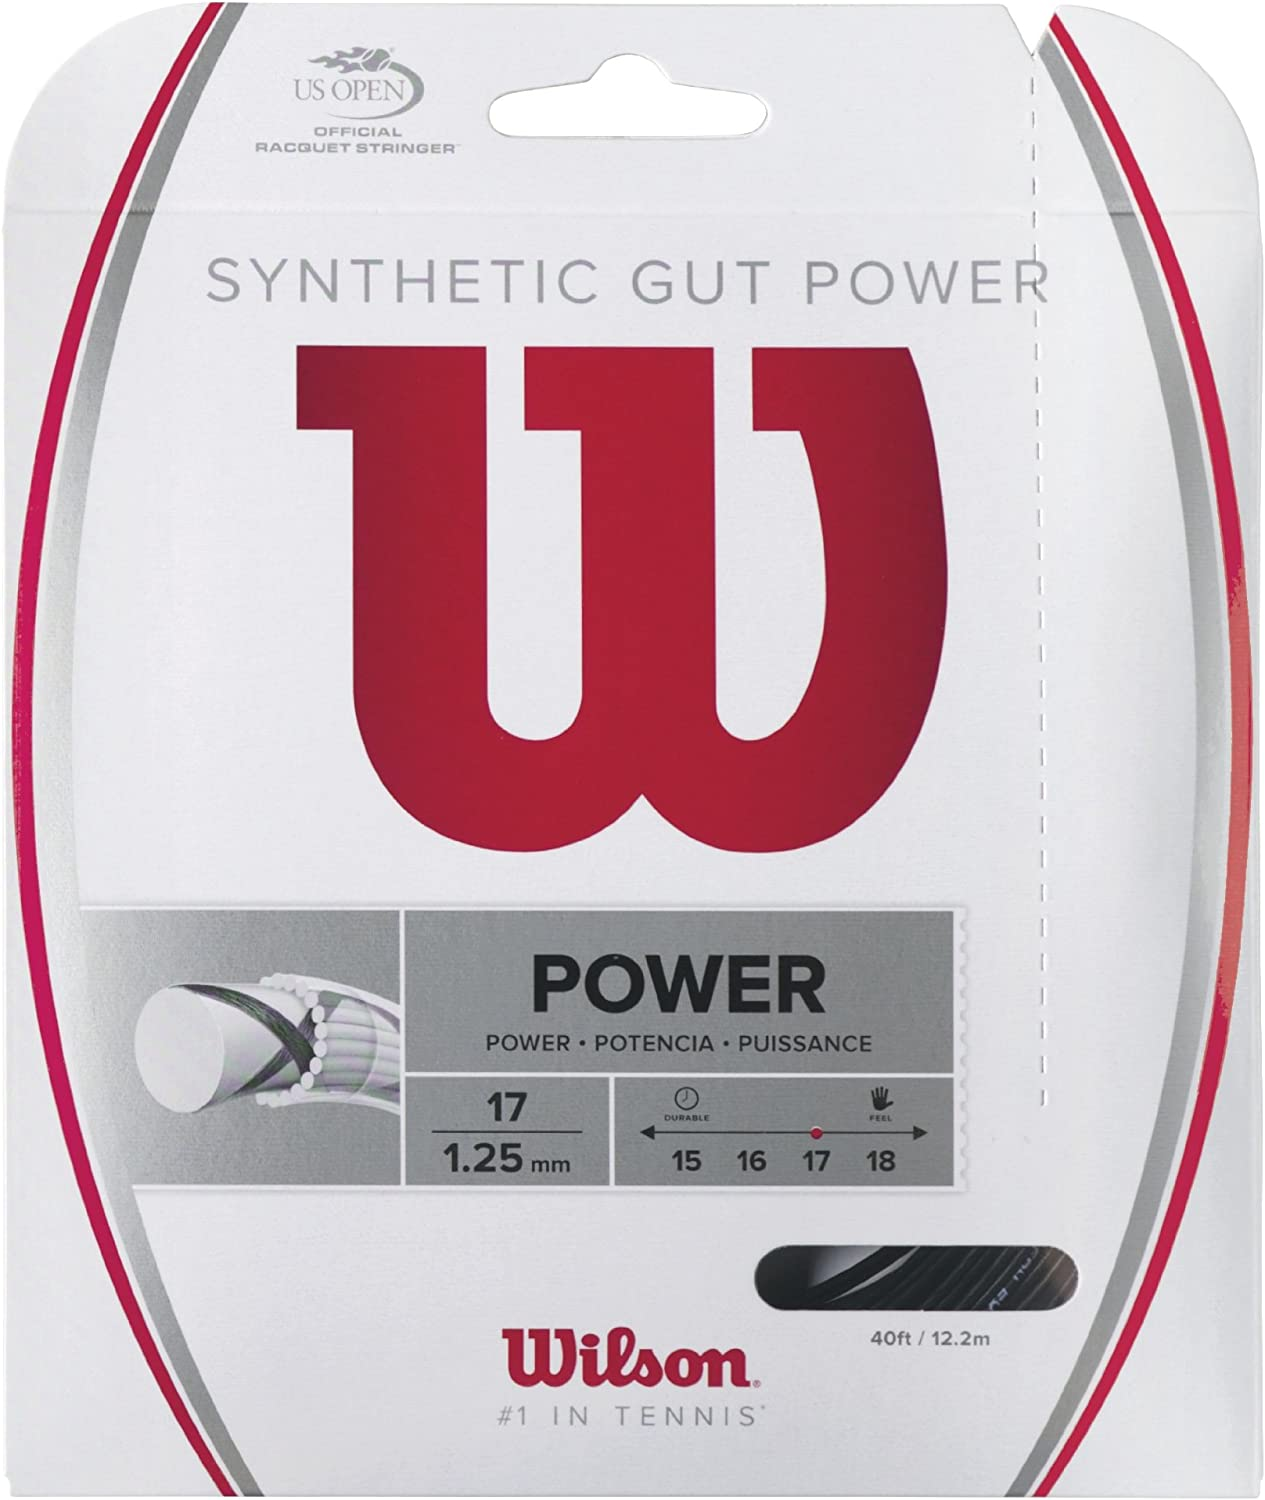 1.25 mm Wilson Unisexs Synthetic Gut Power String Set-Black